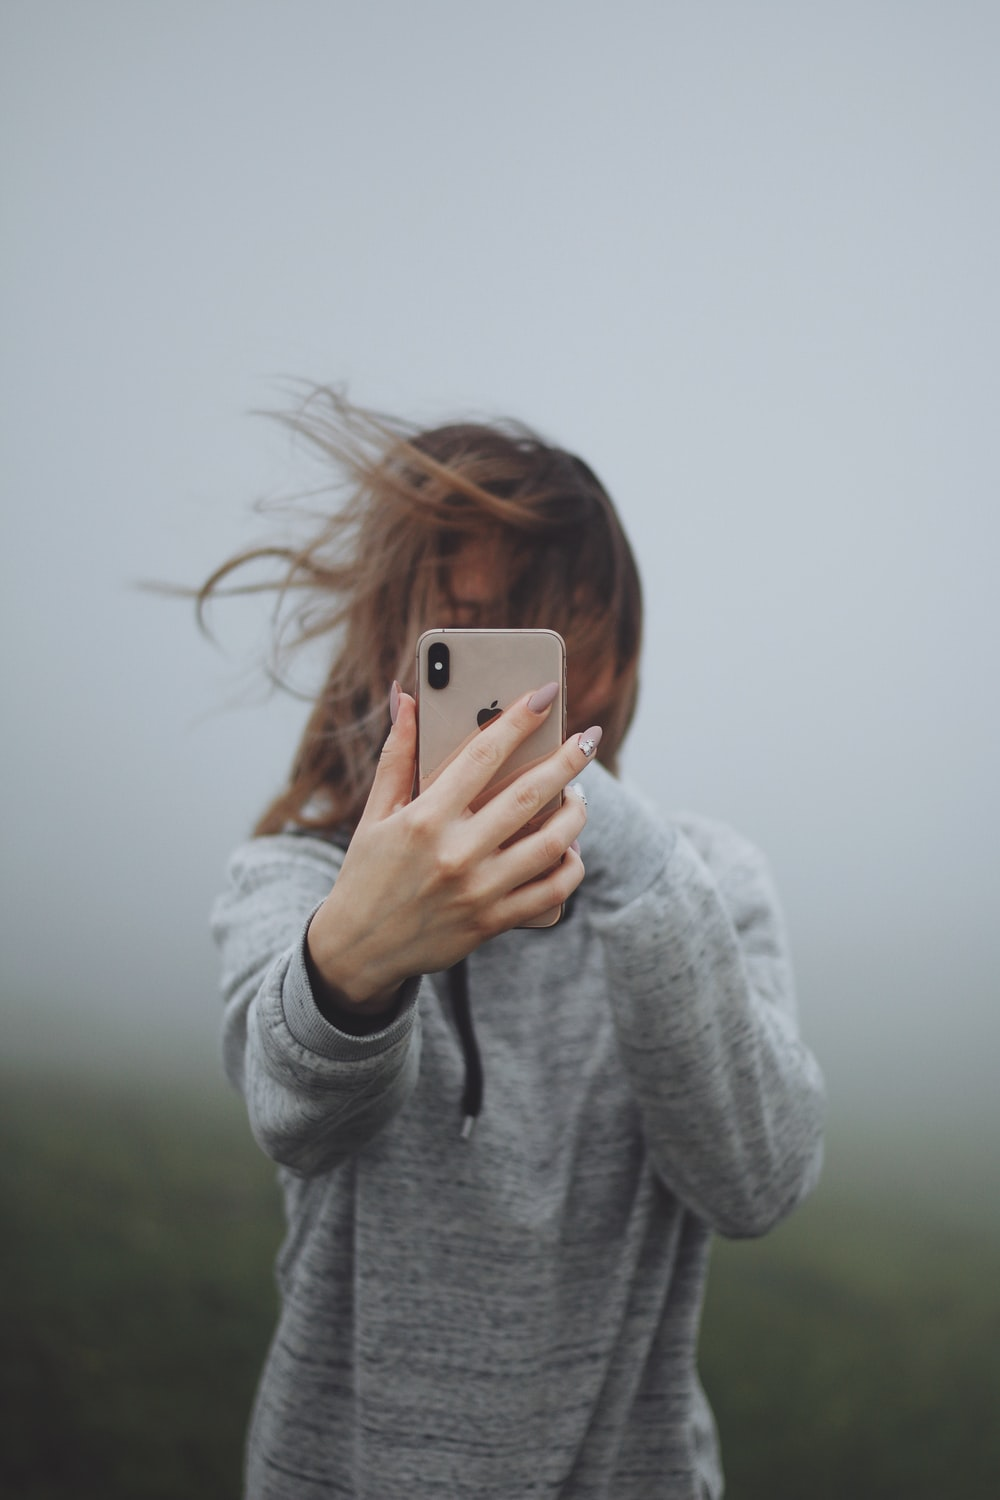 woman holding iPhone smartphone